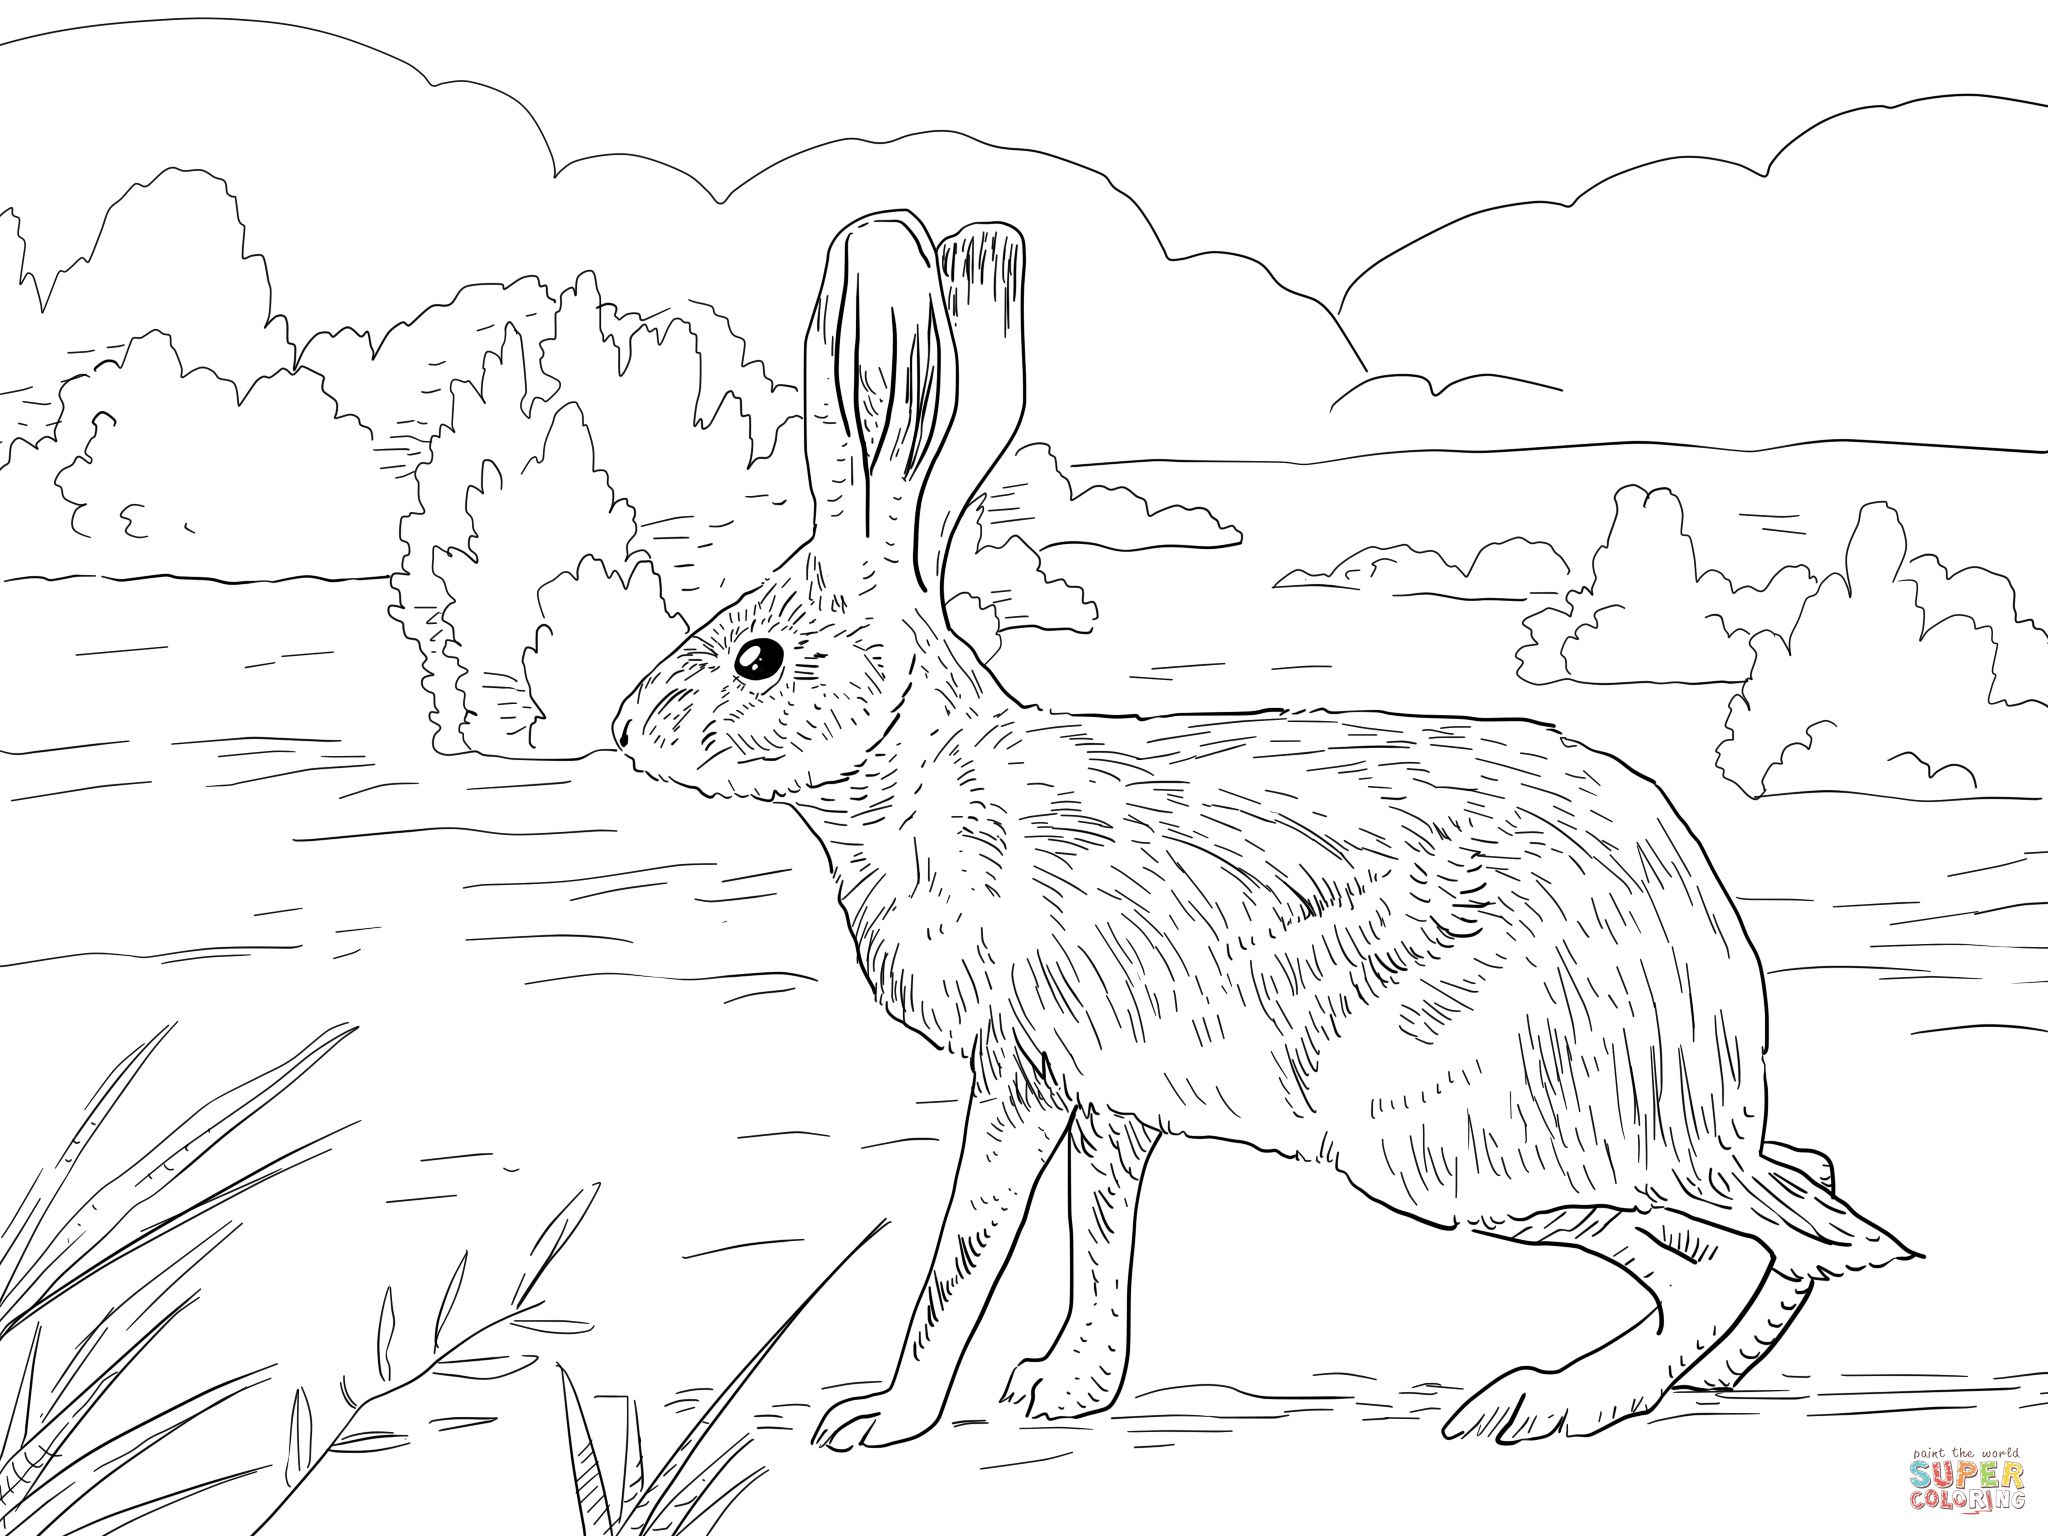 California Jack Rabbit Coloring Page Supercoloring Com Coloring Pages Bunny Coloring Pages Super Coloring Pages